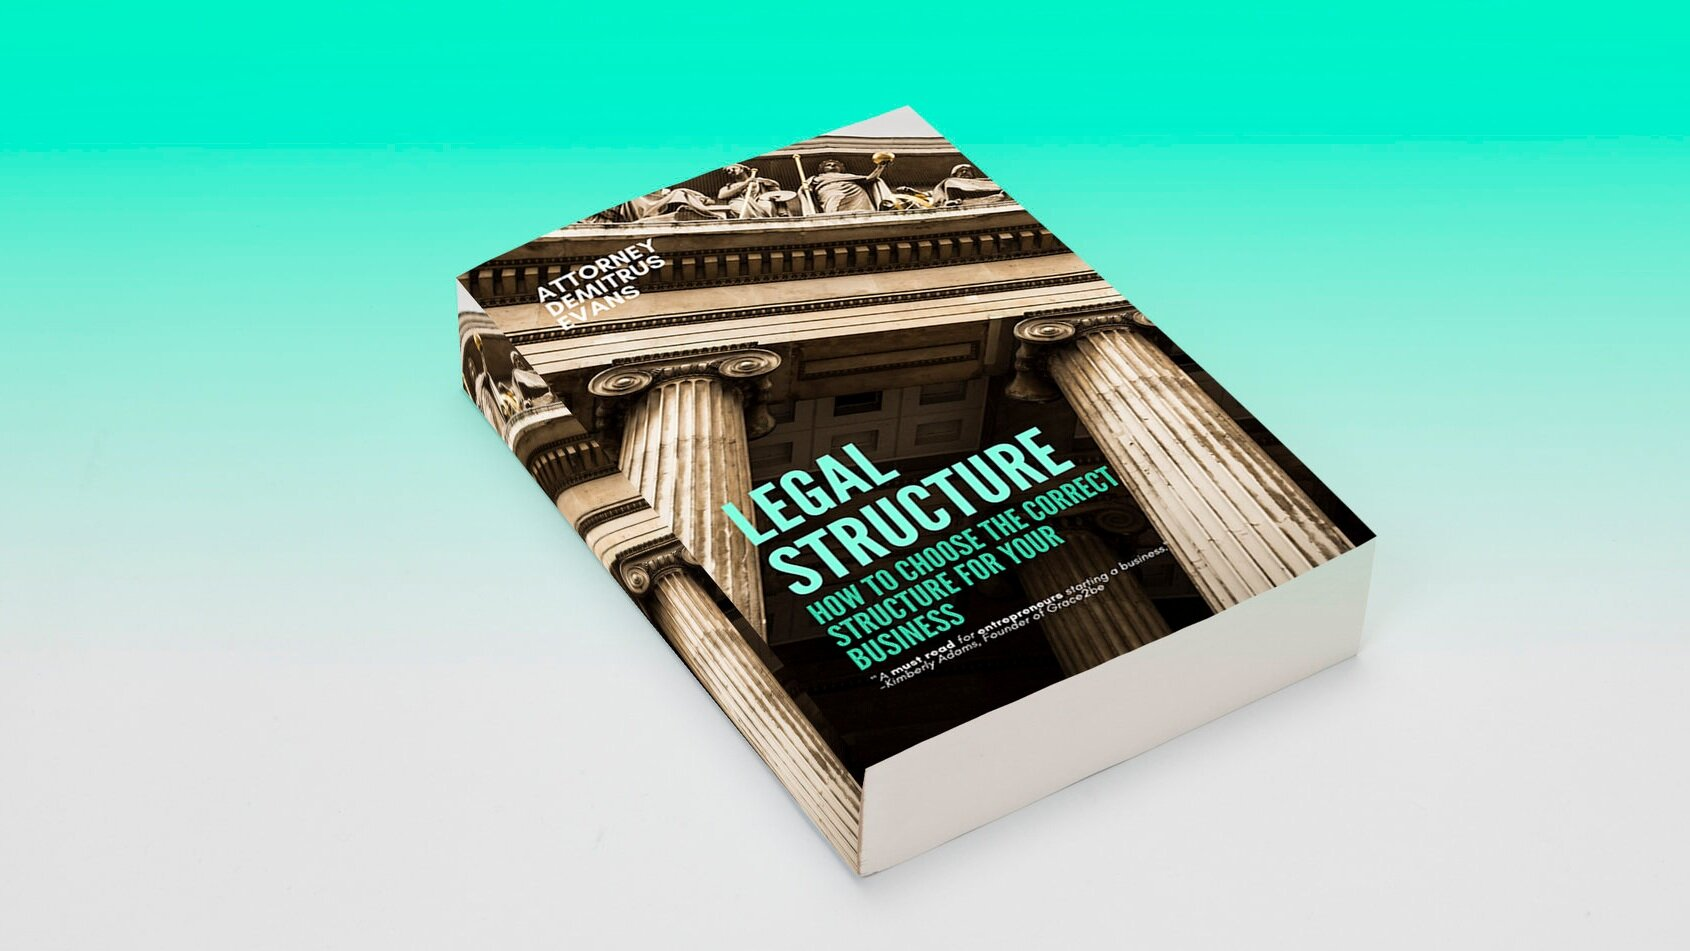 Download THE e-Book Now! - The Evans International Law Firms, LLC presents Legal Structure: How to Choose The Correct Structure For Your Business